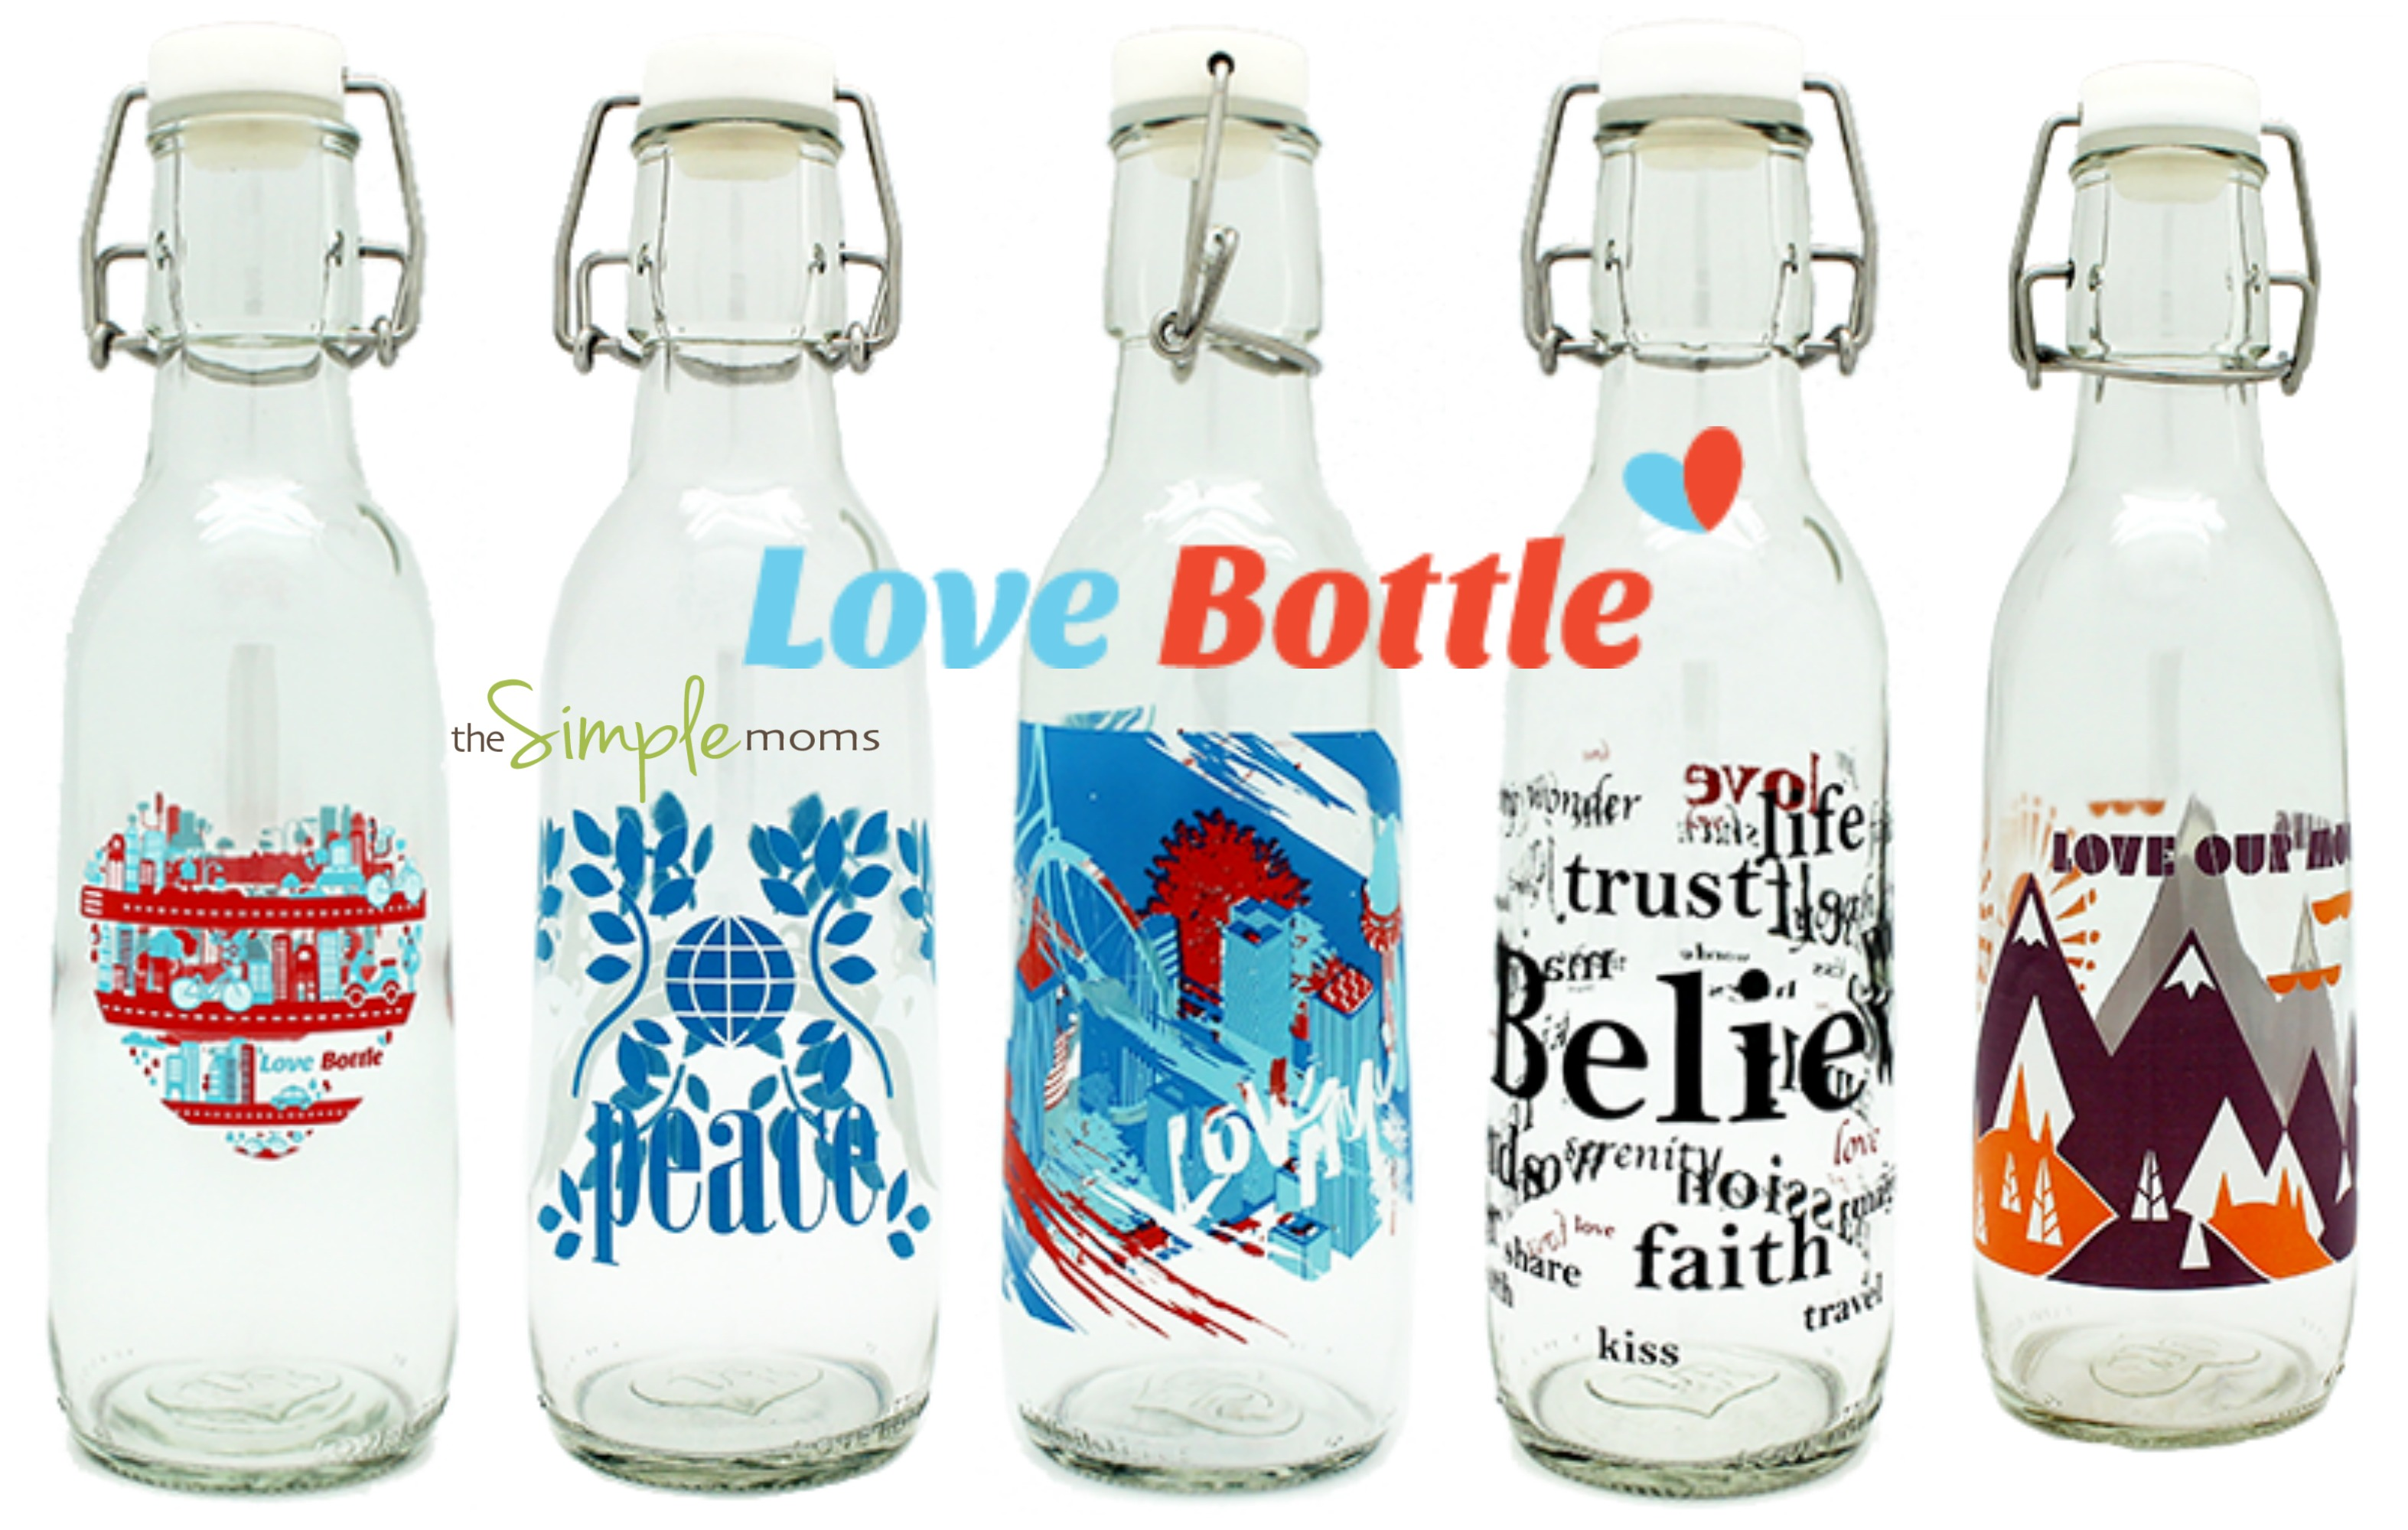 LoveBottle copy